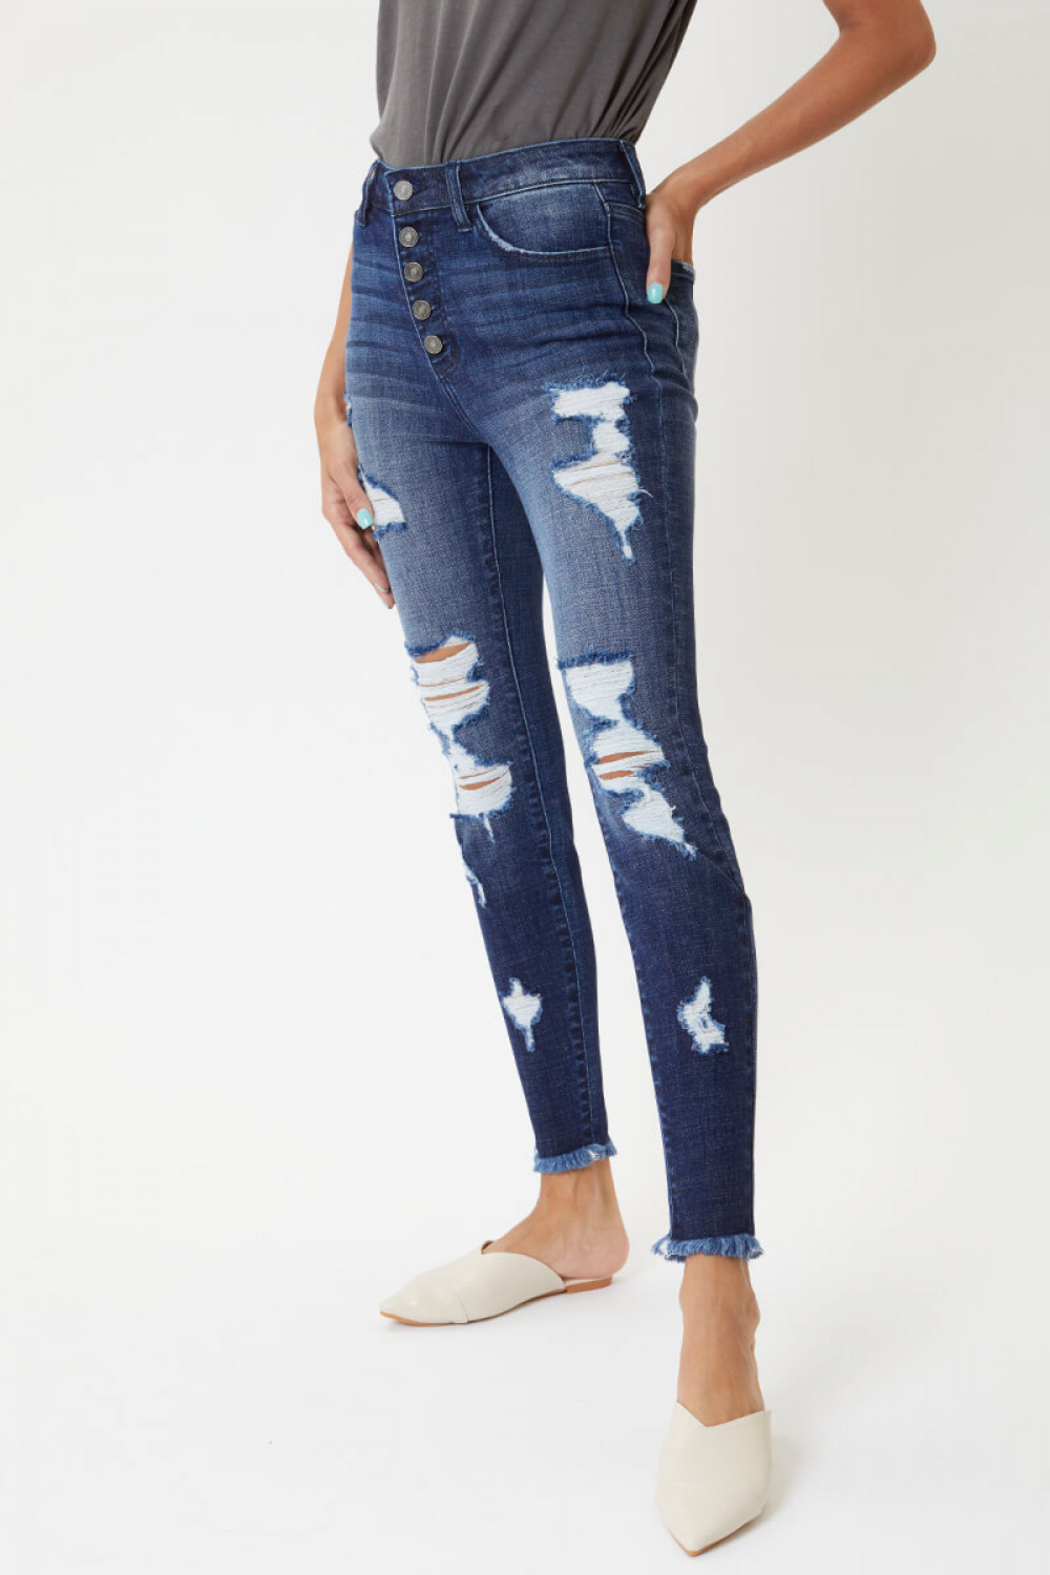 KanCan High Rise Ankle Skinny jean (KC7310D) - Front Cropped Image